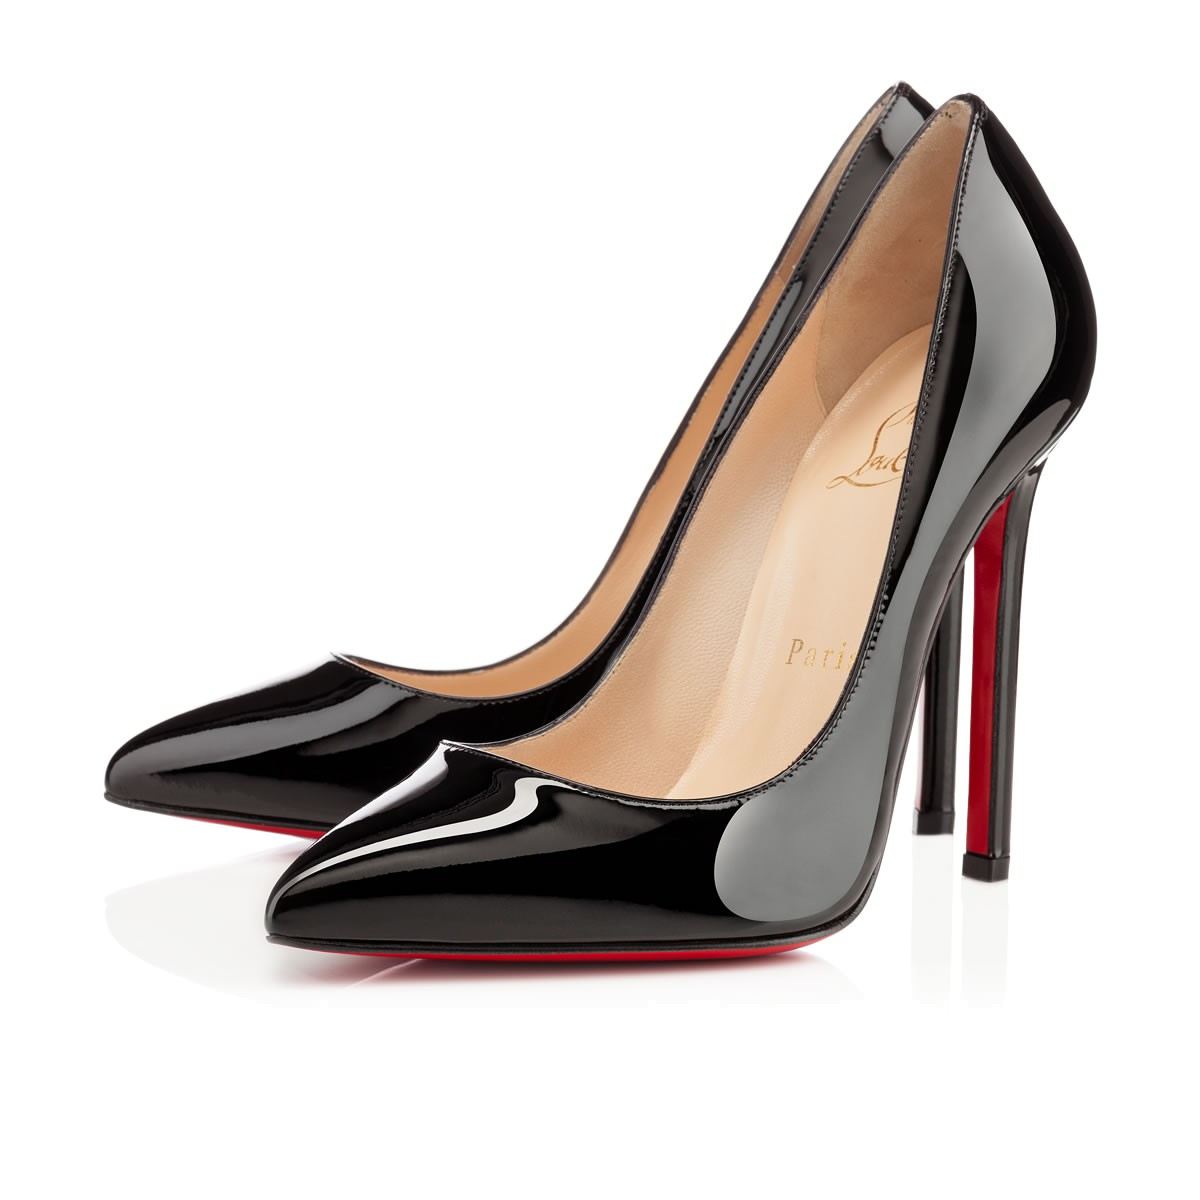 05-adopt-an-object-design-museum-london-christian-louboutin-pigalle